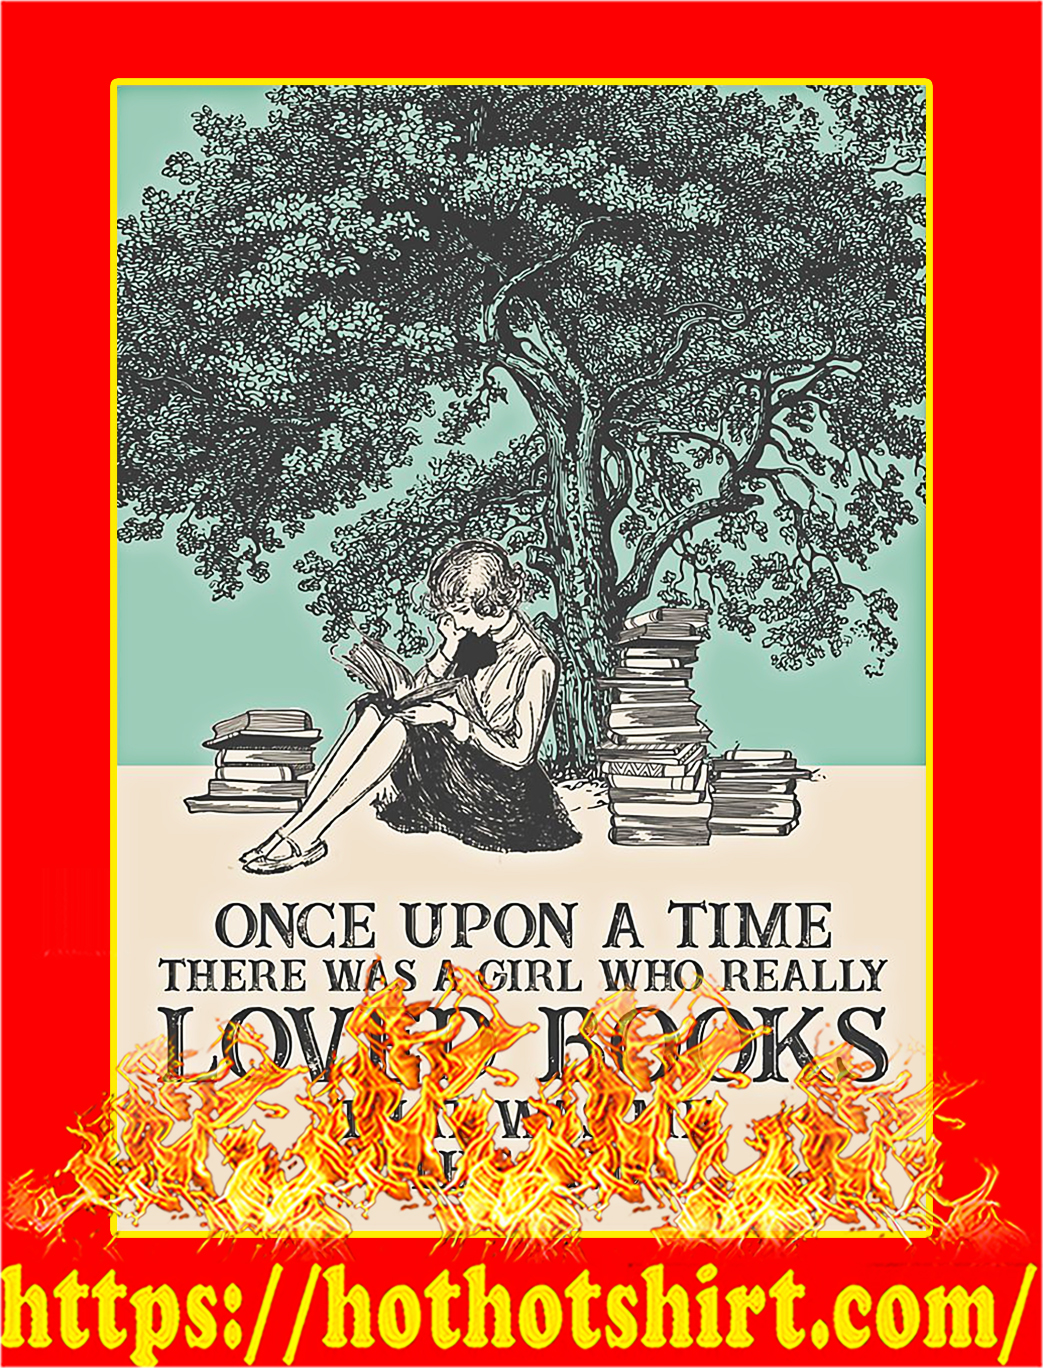 One upon a time there was a girl who really loved books that was me the end poster - A4